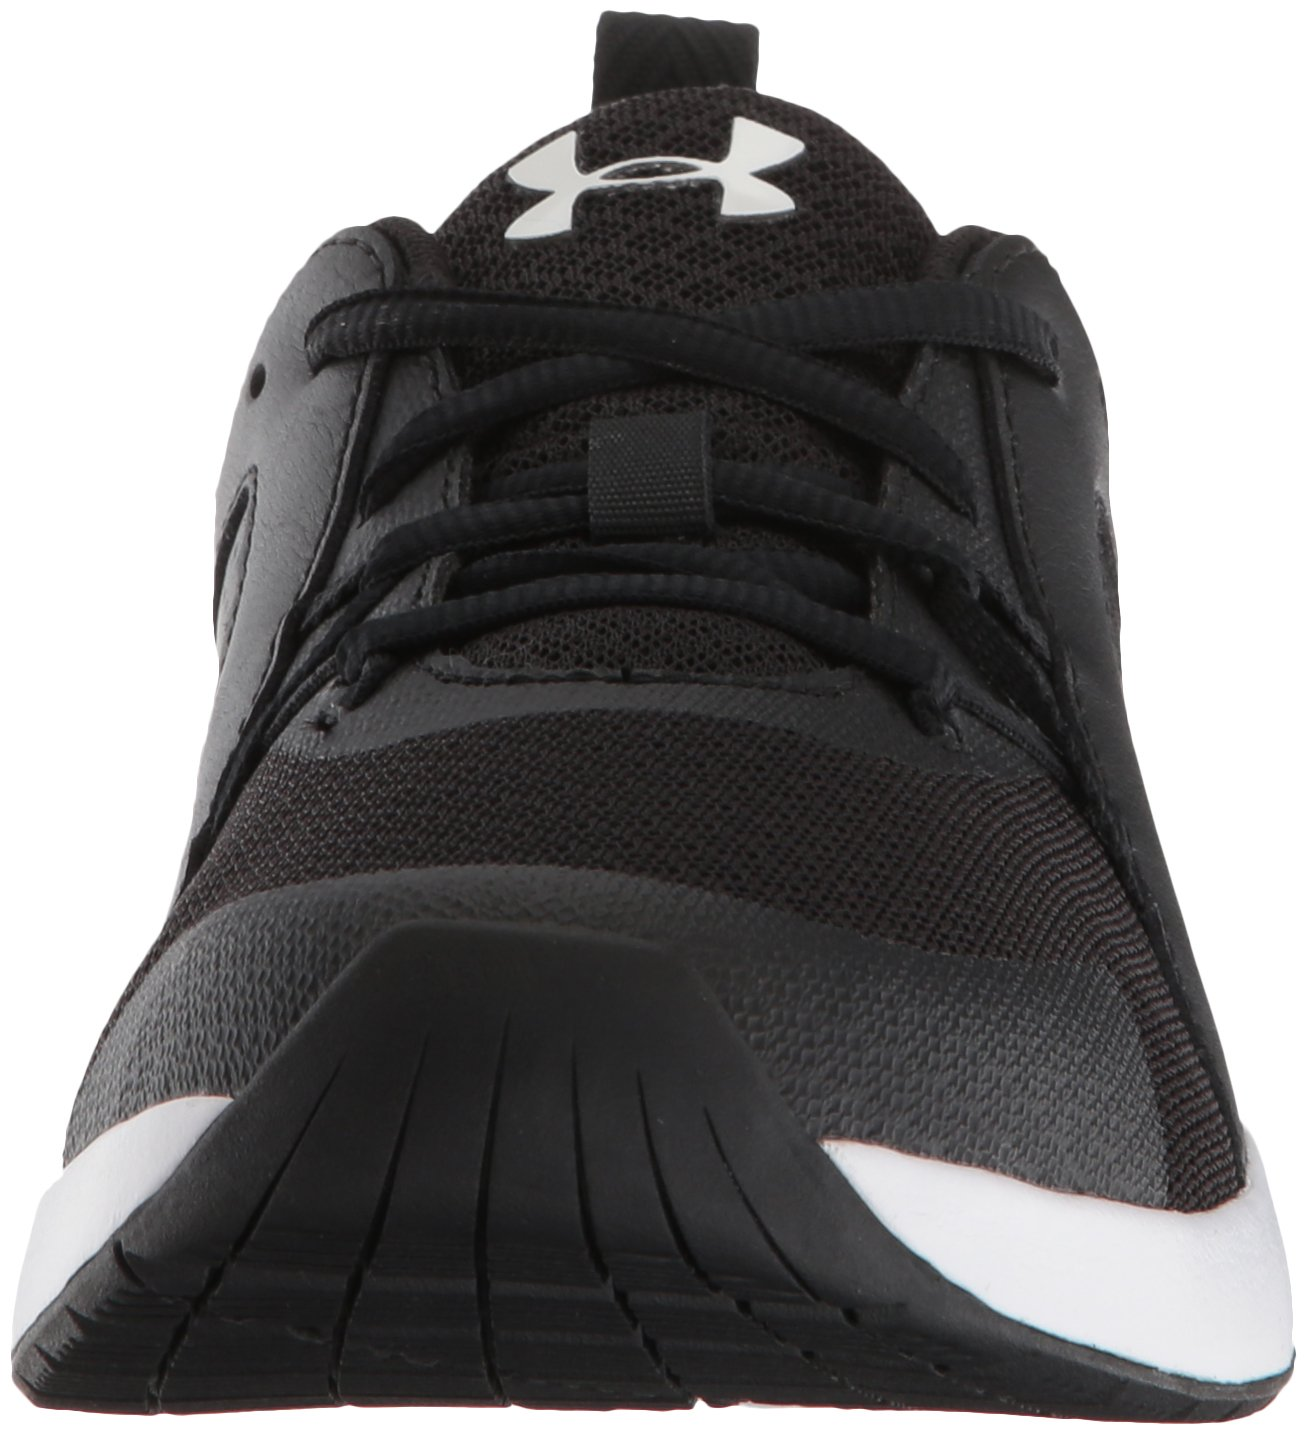 Under Armour Women's Intent Trainer Sneaker B07742NBK6 10.5 M US|Black (002)/Black